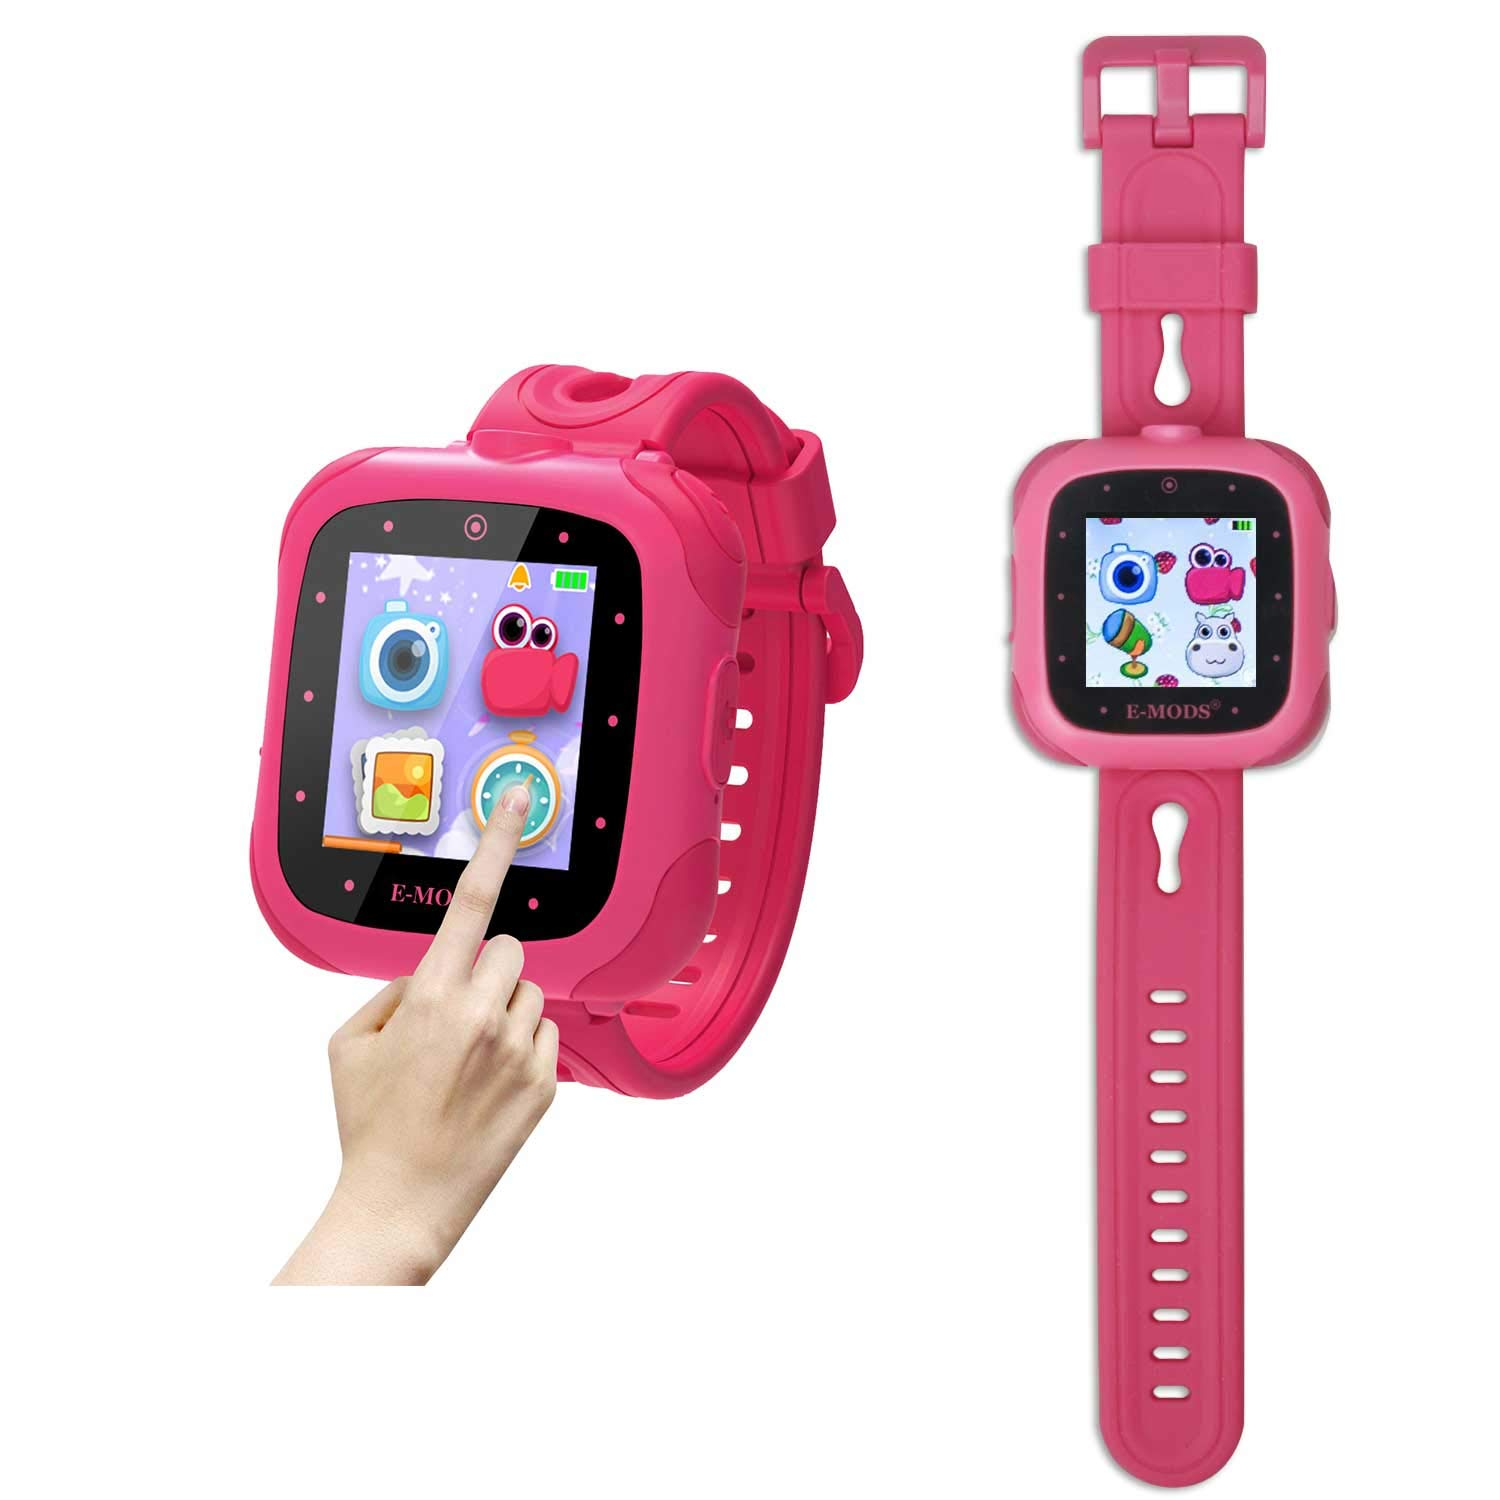 """E-MODS GAMING Educational Smart Watch for Kids-1.5""""Touchscreen Digital Wrist Watch with Camera,Learning Toys Smartwatch Gifts for Children Boys and Girls"""